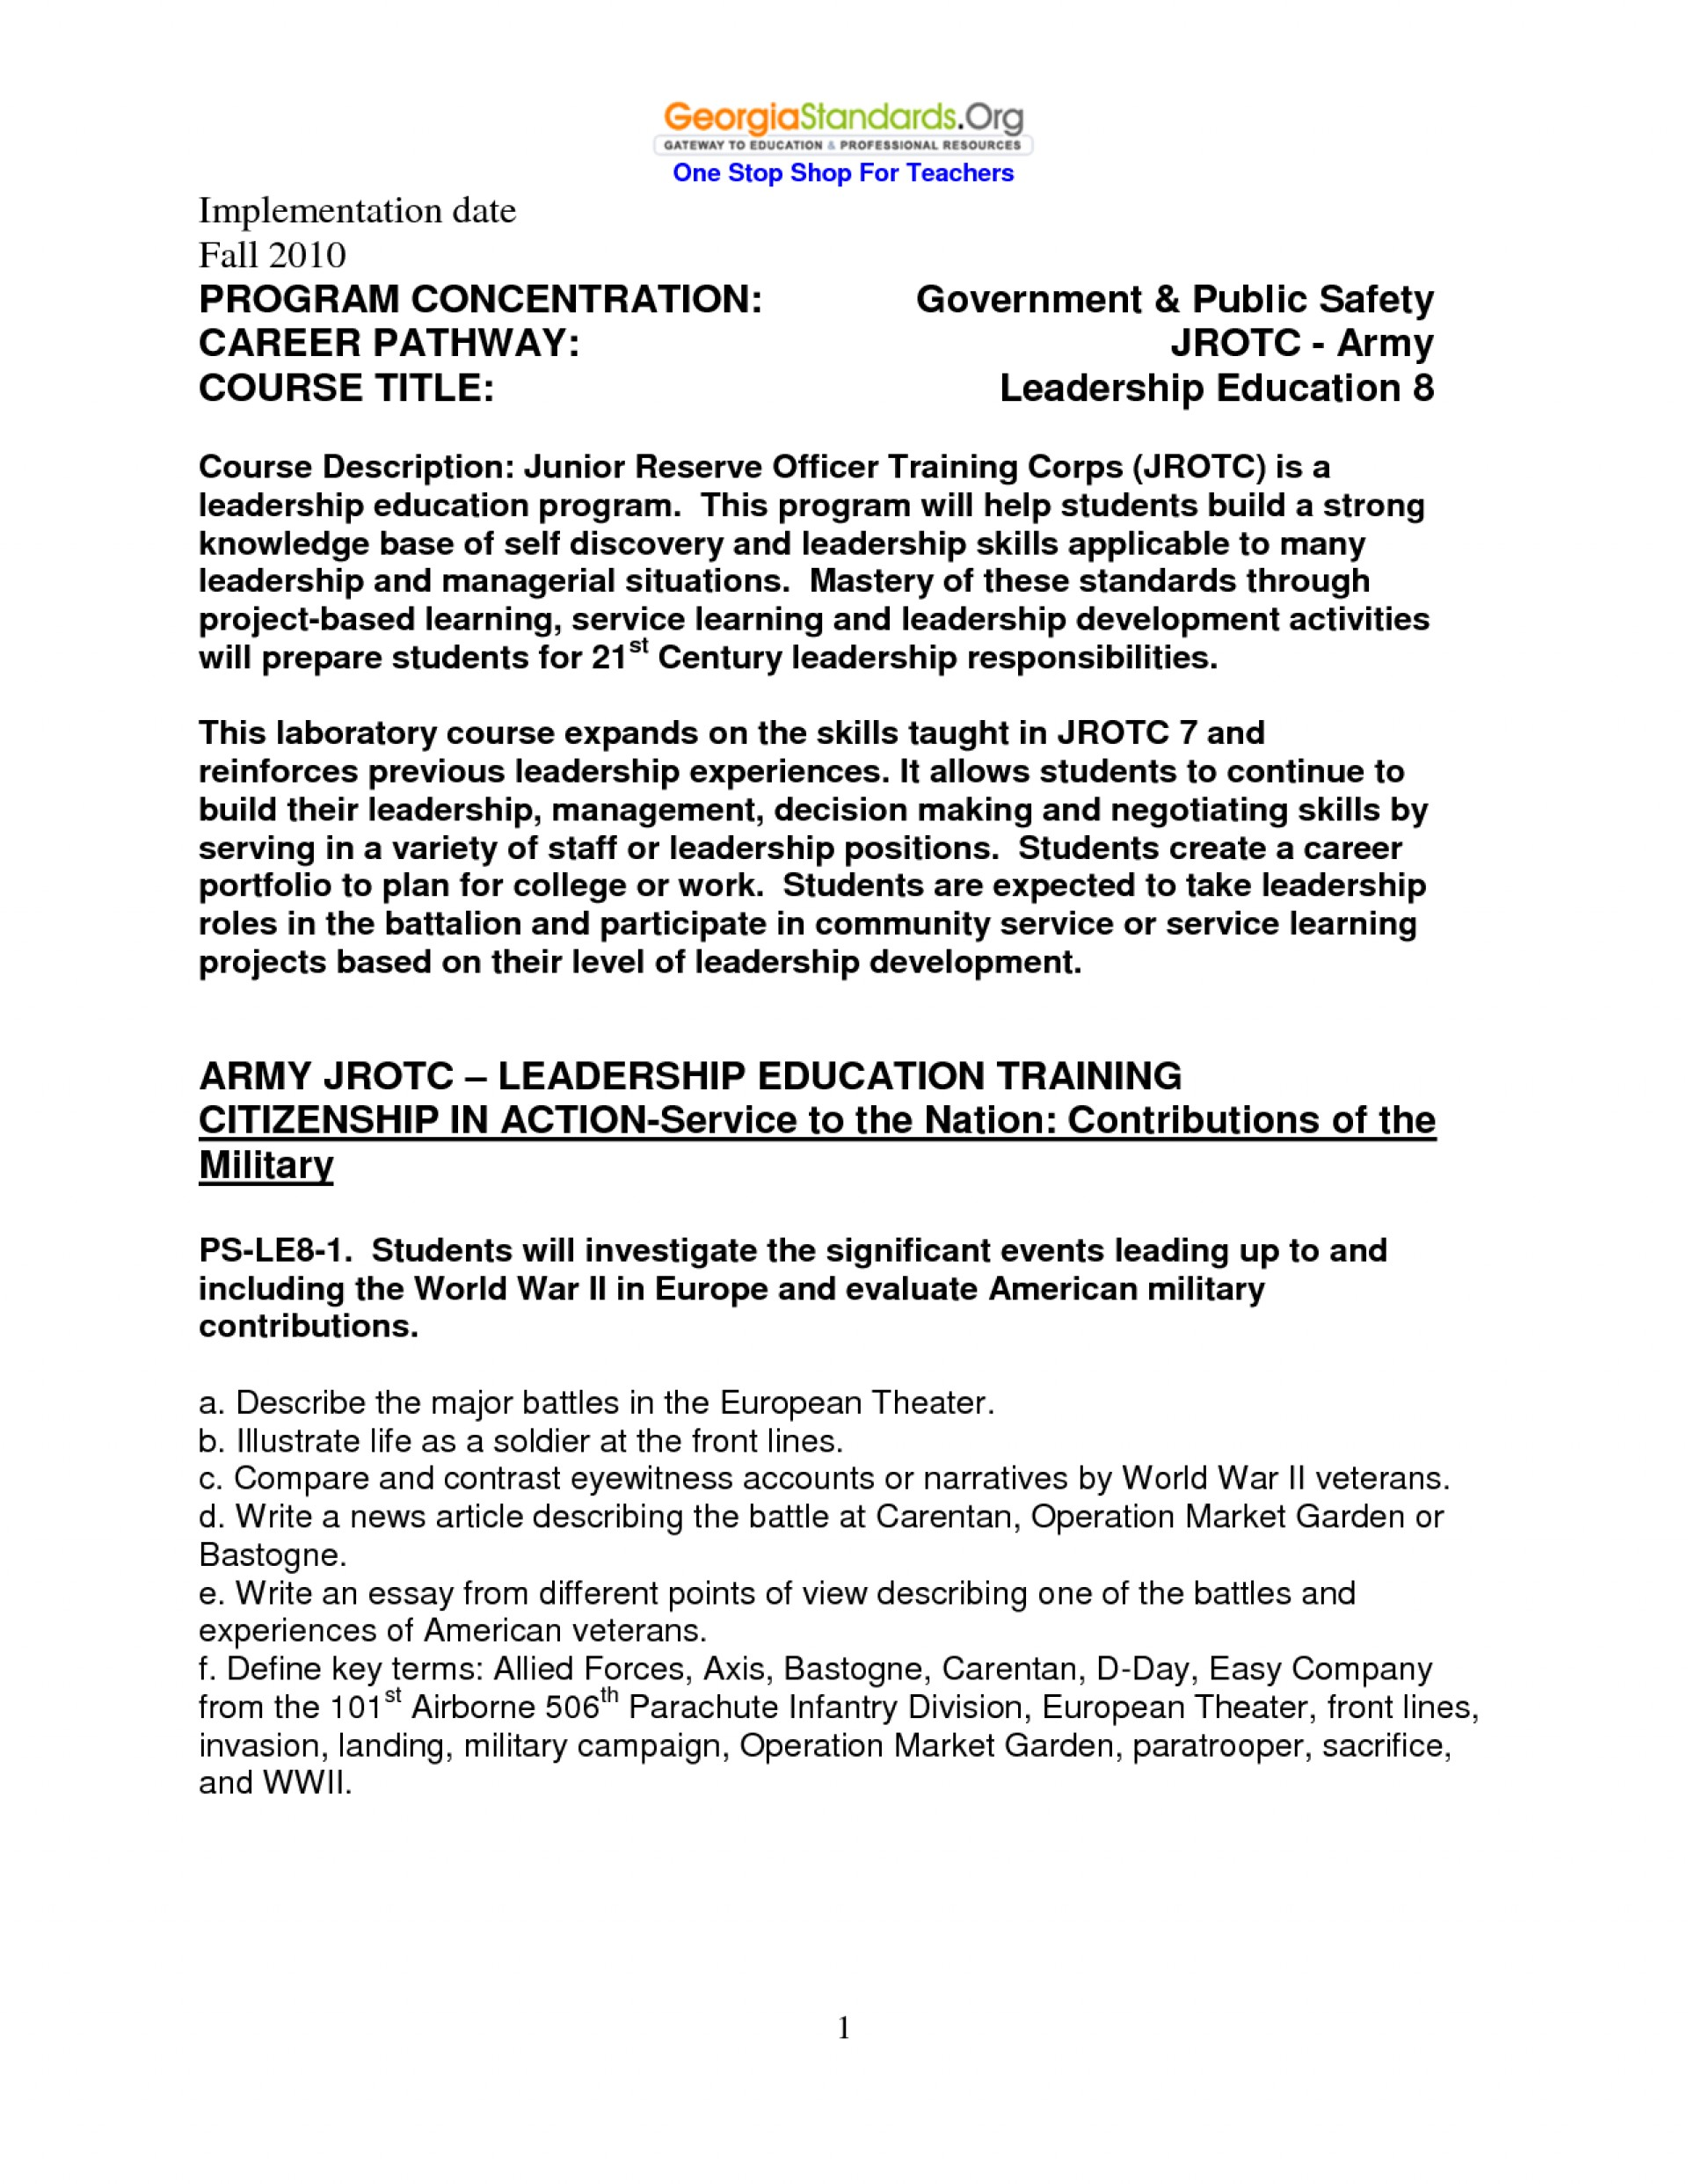 001 Rotc Research Paper Army Leadership Essayes Loyalty College Format On Officer Narrative Basic Training In Hindi Life Day One Page Values Free Accountability Being Time Of Pakistan Singular Essay Prompt Scholarship Application Questions 1920